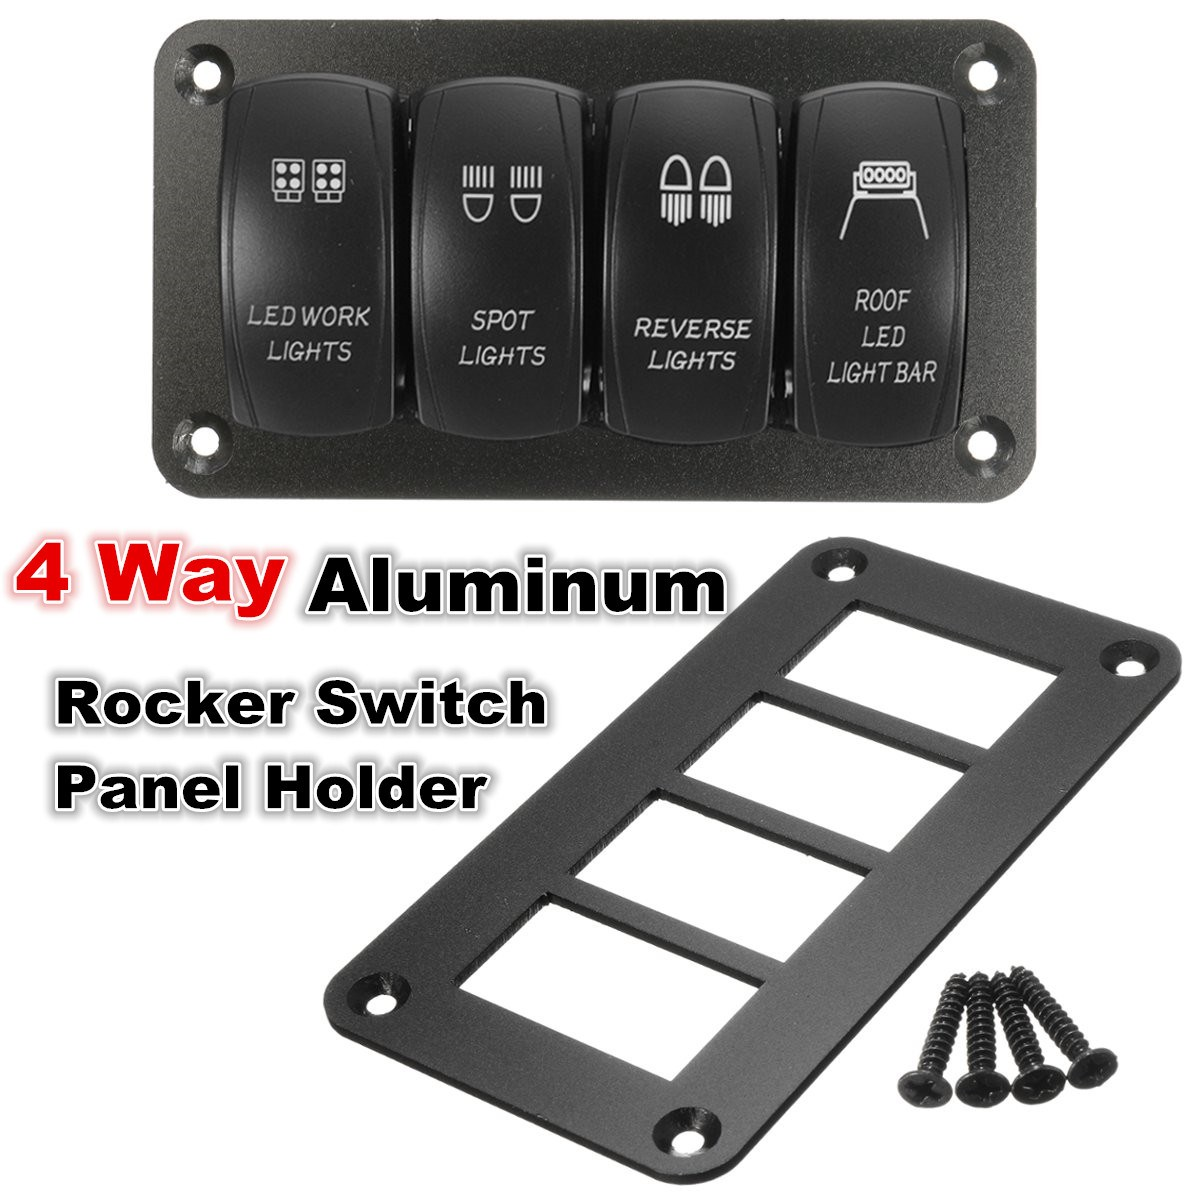 2/3/4/6 Way Aluminum Rocker Switch Panel Housing Holder FOR ARB ...